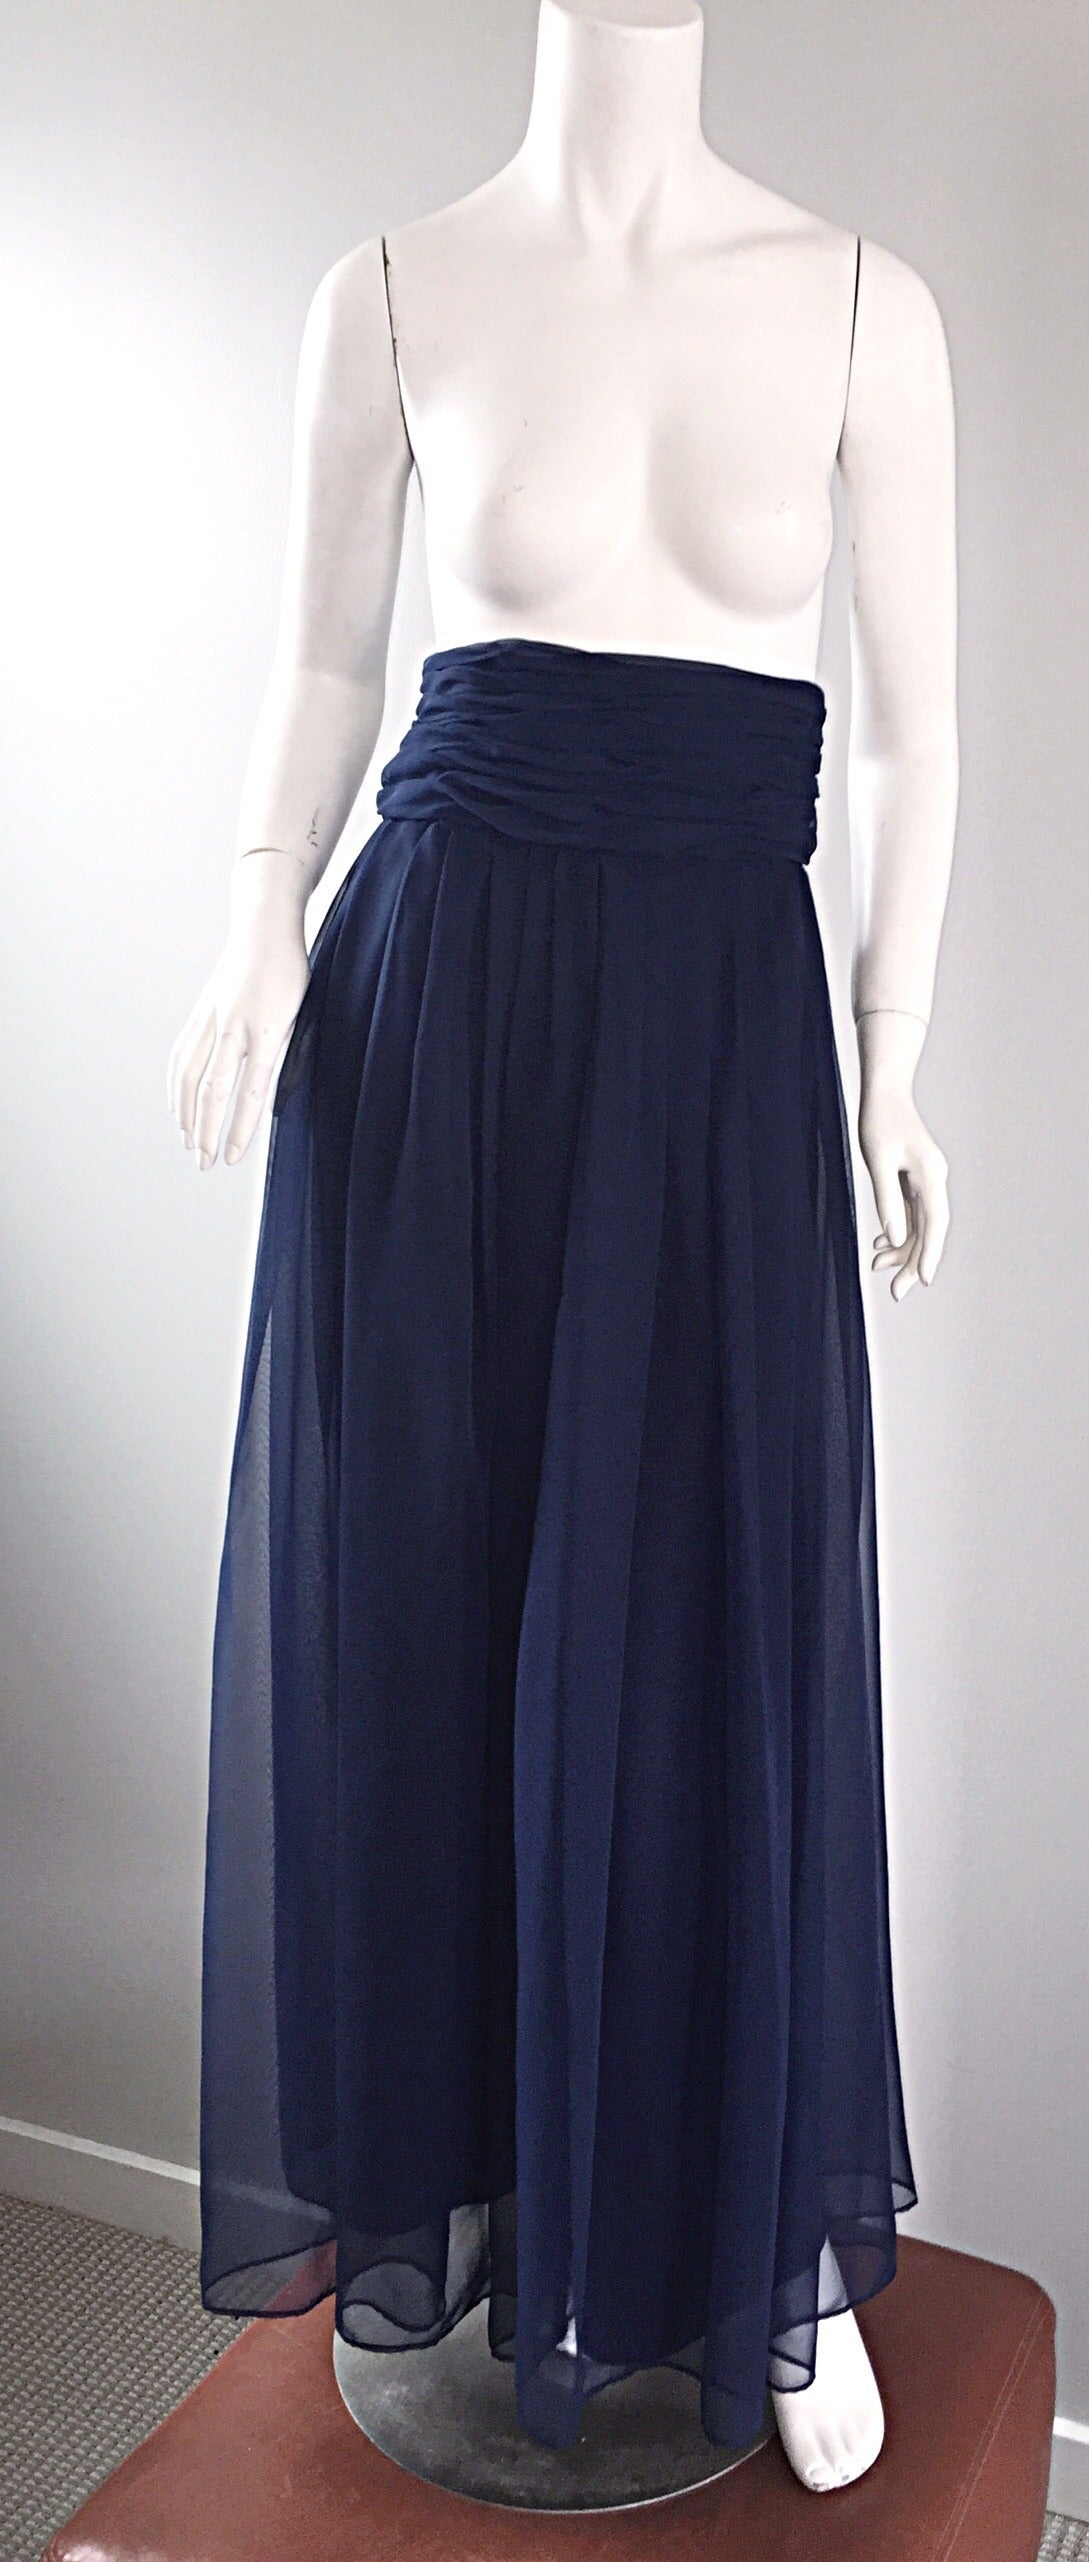 Chic Vintage Evening Trousers Pants In Navy Blue By